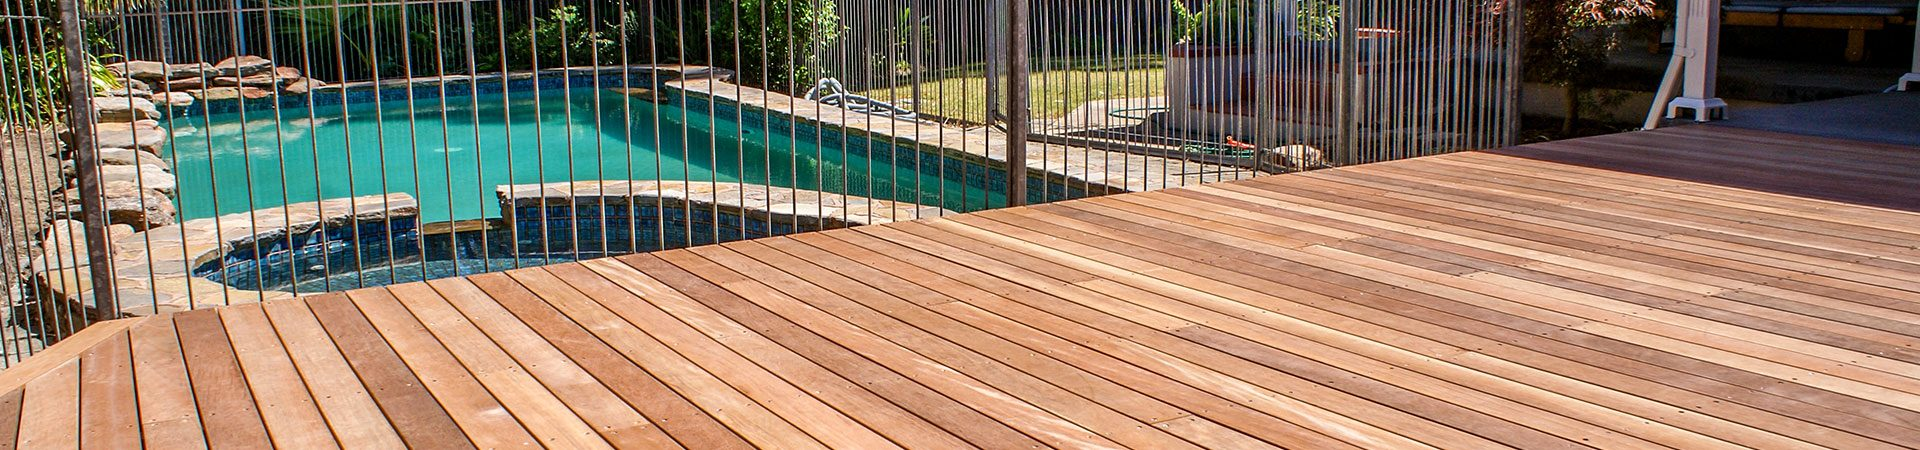 Timber Decking & Screening Adelaide | Cost Effective Outdoor